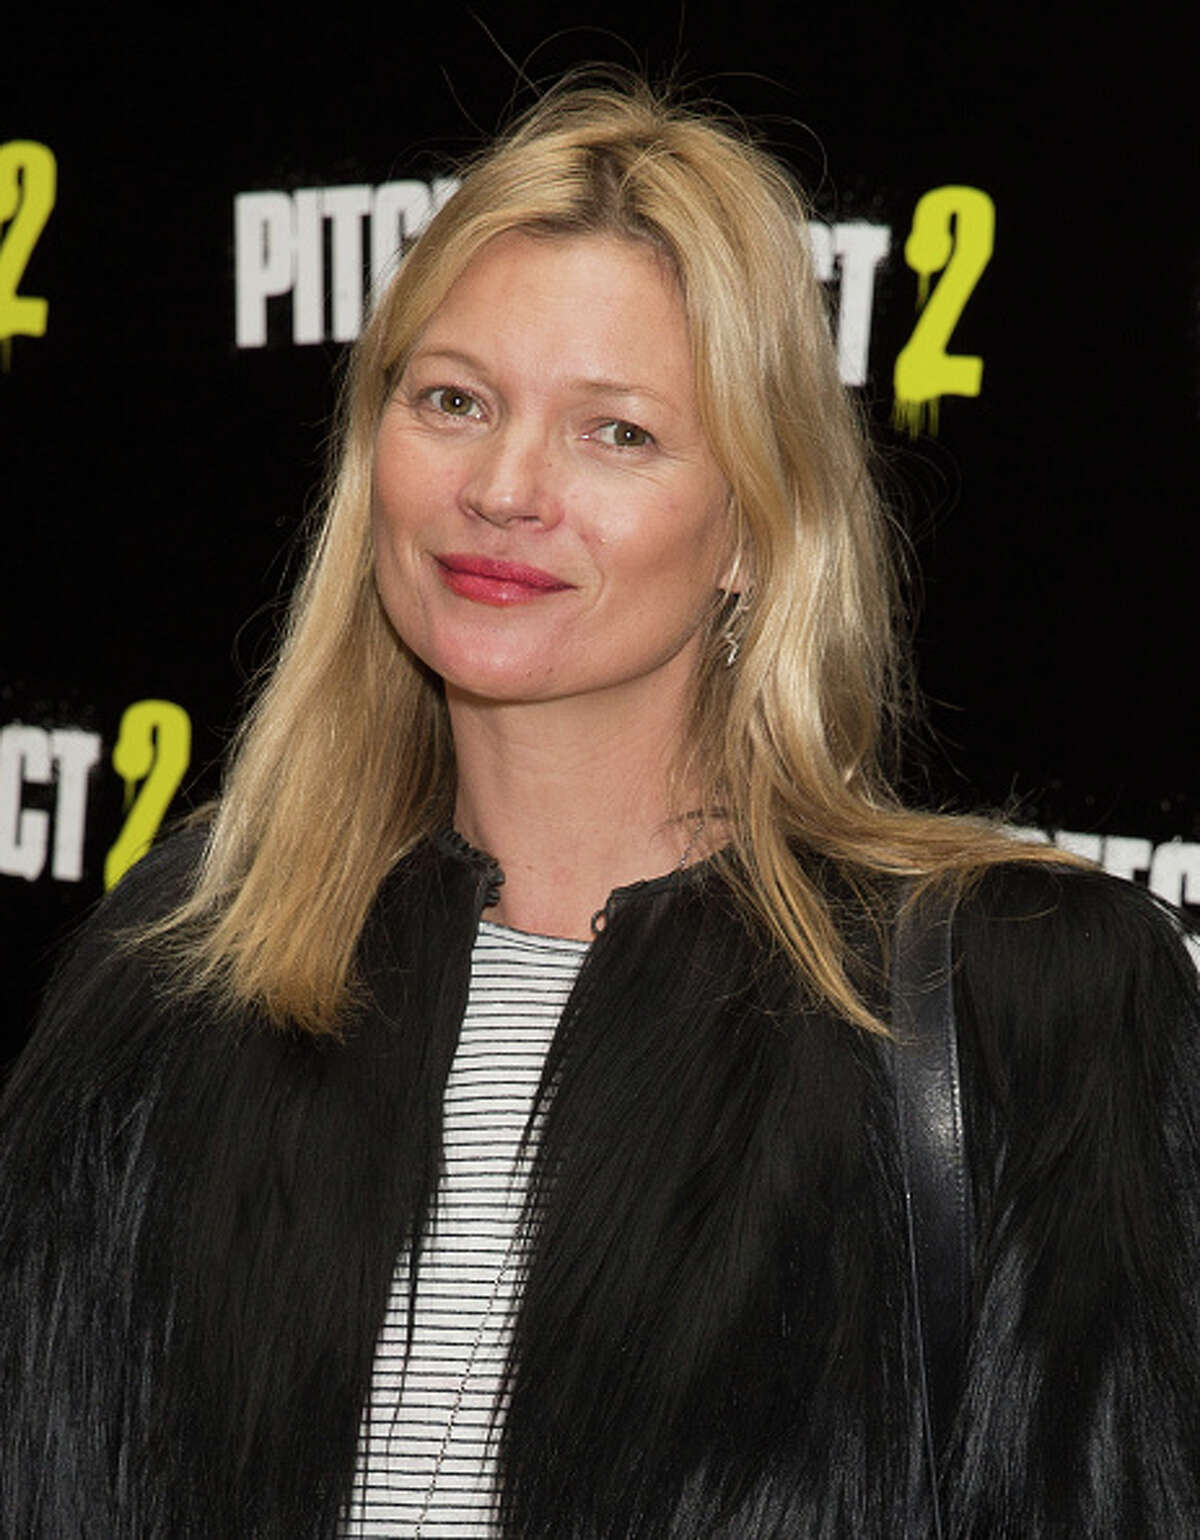 Kate Moss British supermodel Kate Moss was reportedly escorted off a plane at Britain's Luton Airport on June 7, 2015, for allegedly disrupting a flight from Turkey. The veteran runway star was onboard an easyJet plane originating from Bodrum, and when it landed at the airport in Bedfordshire, England.Police were called in to assist the flight staff in escorting a passenger off the aircraft.A spokesman for the police tells the BBC,